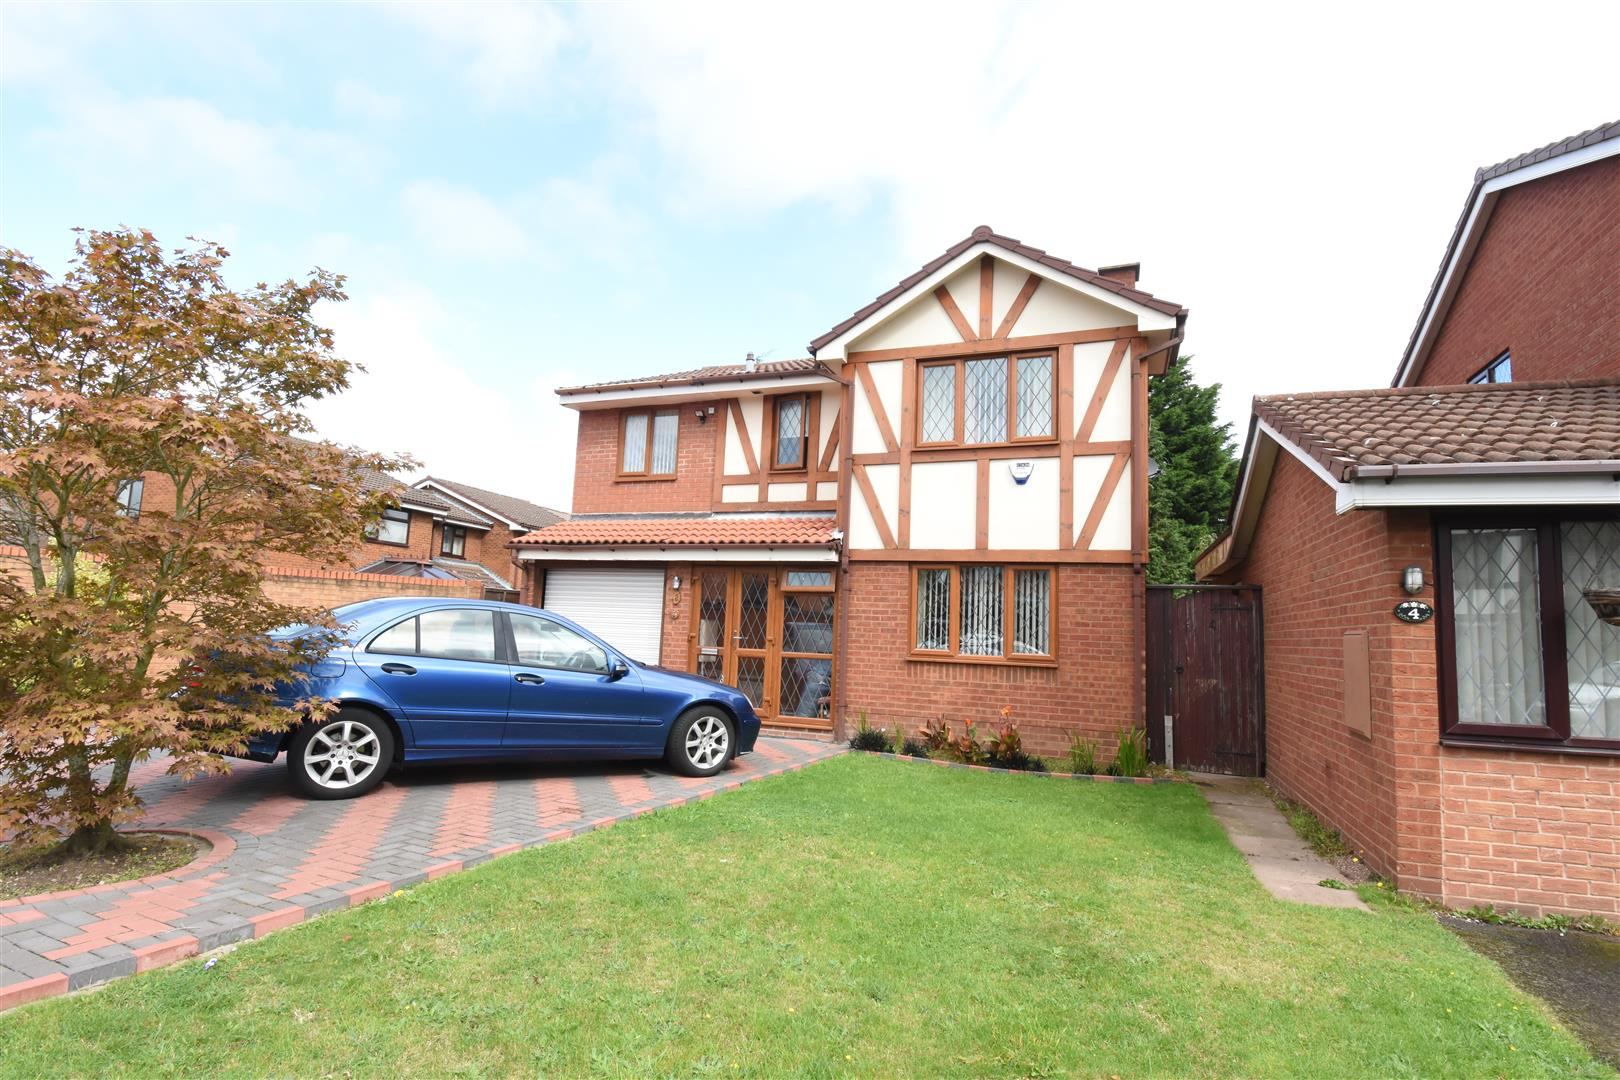 5 bed house for sale in Johnson Close, Ward End, Birmingham 2